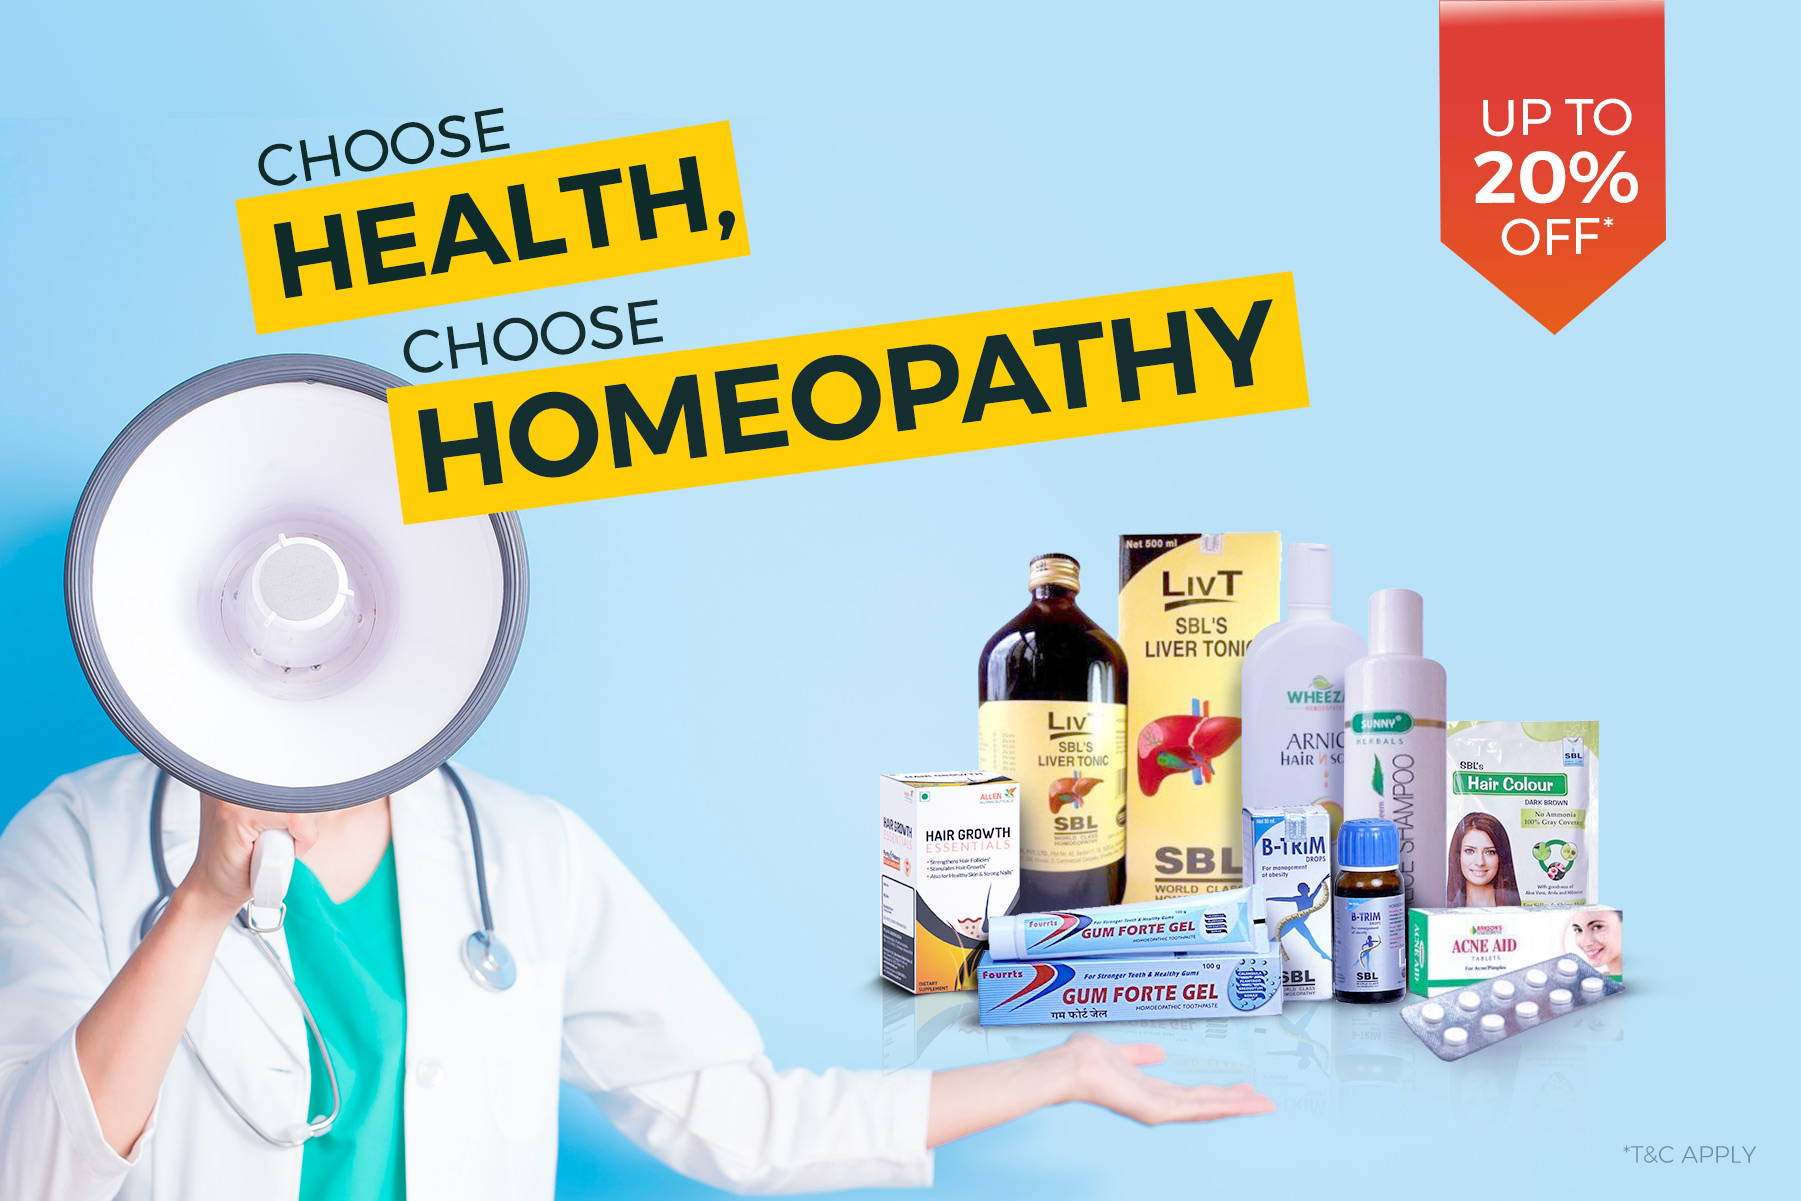 Homeopathic Online Store: Buy Homeopathy Products Online - Pinhealth